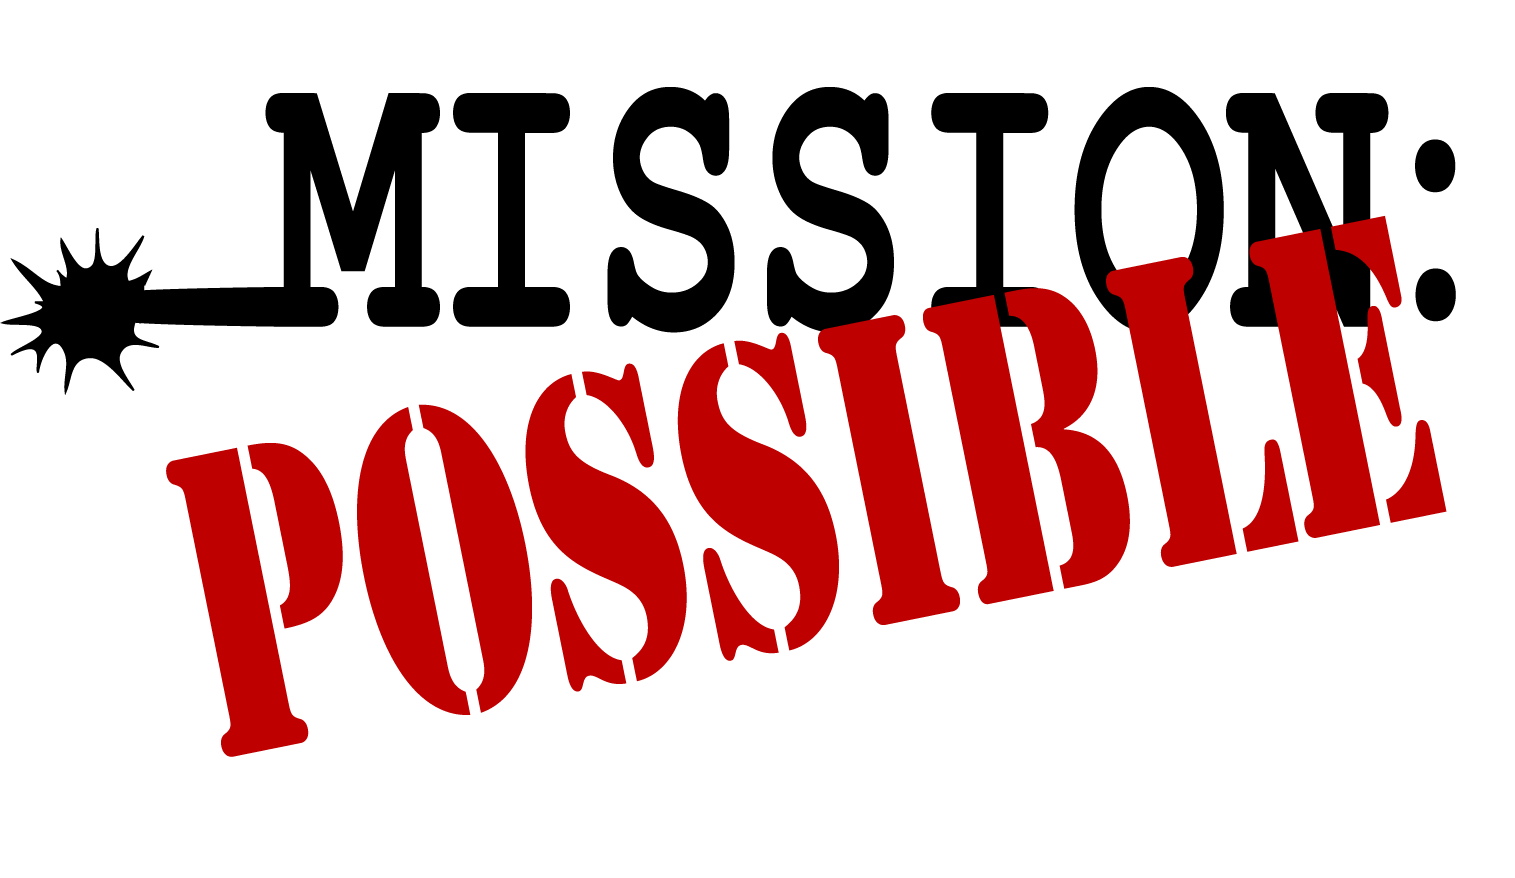 Missions clipart mission impossible. Free possible cliparts download